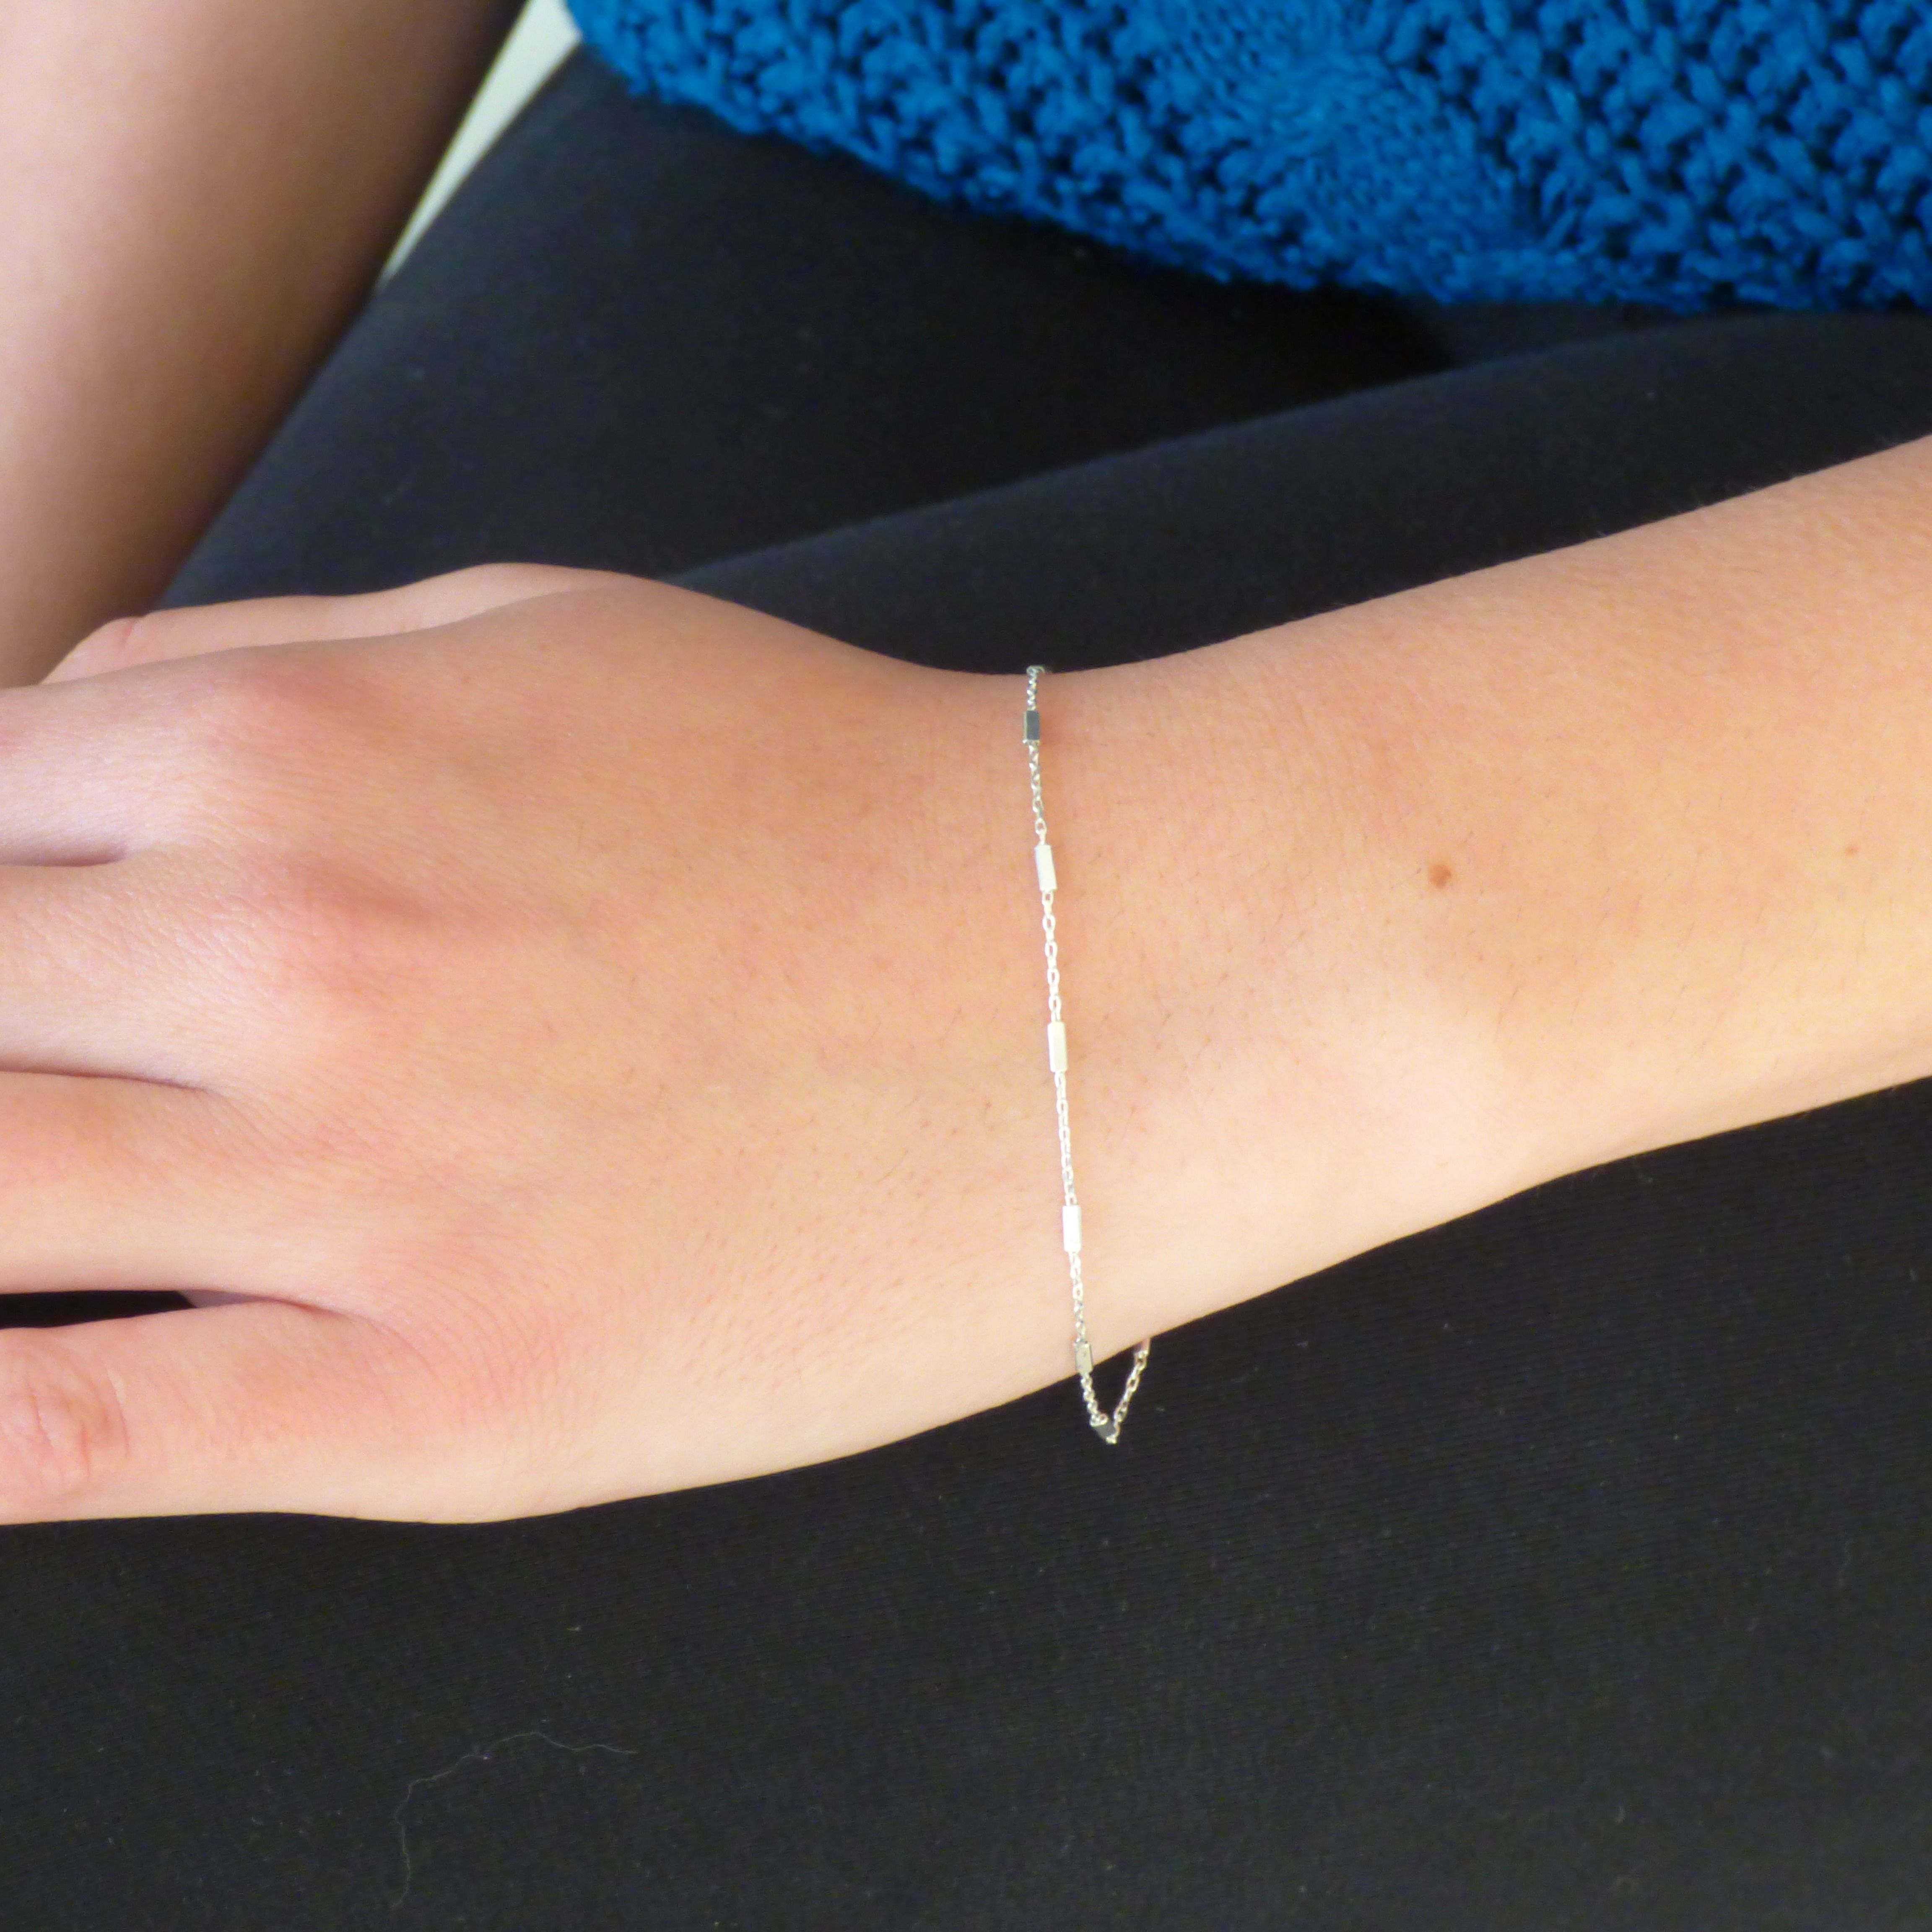 Delicate silver chain bracelet with square links